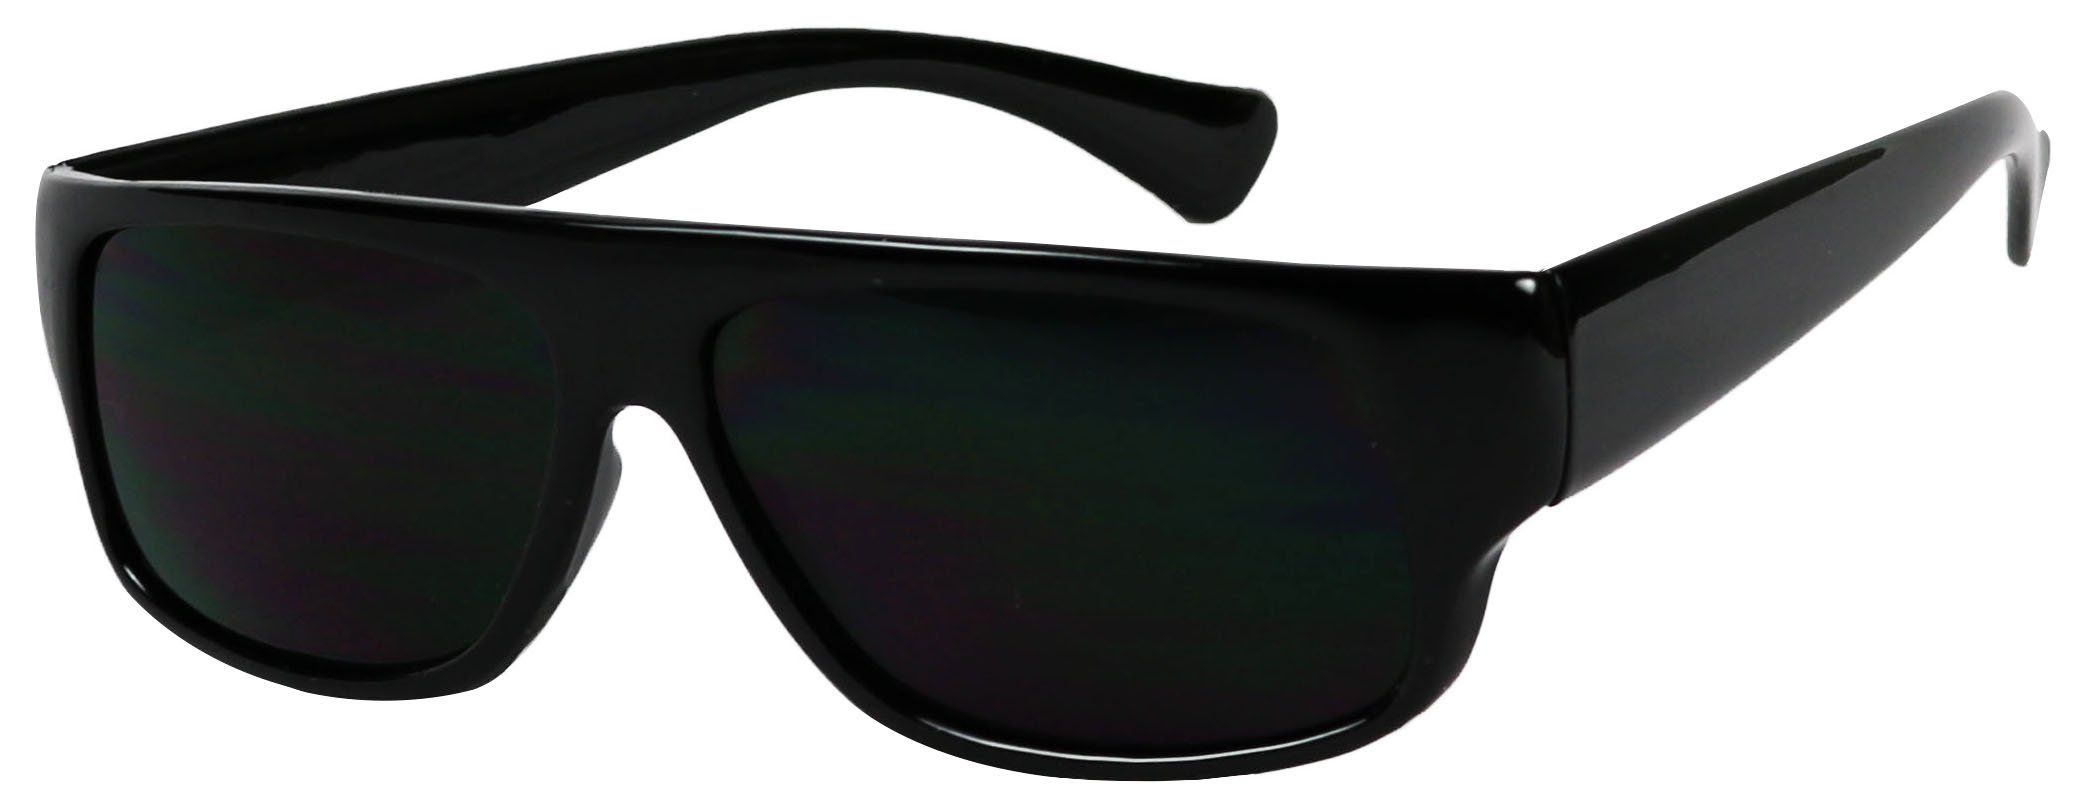 dc0269c4ae Basik Eyewear Super Original Old School Eazy E Gangster Dark Lens Sunglasses      Visit the image link more details. (It is Amazon affiliate link)   ...